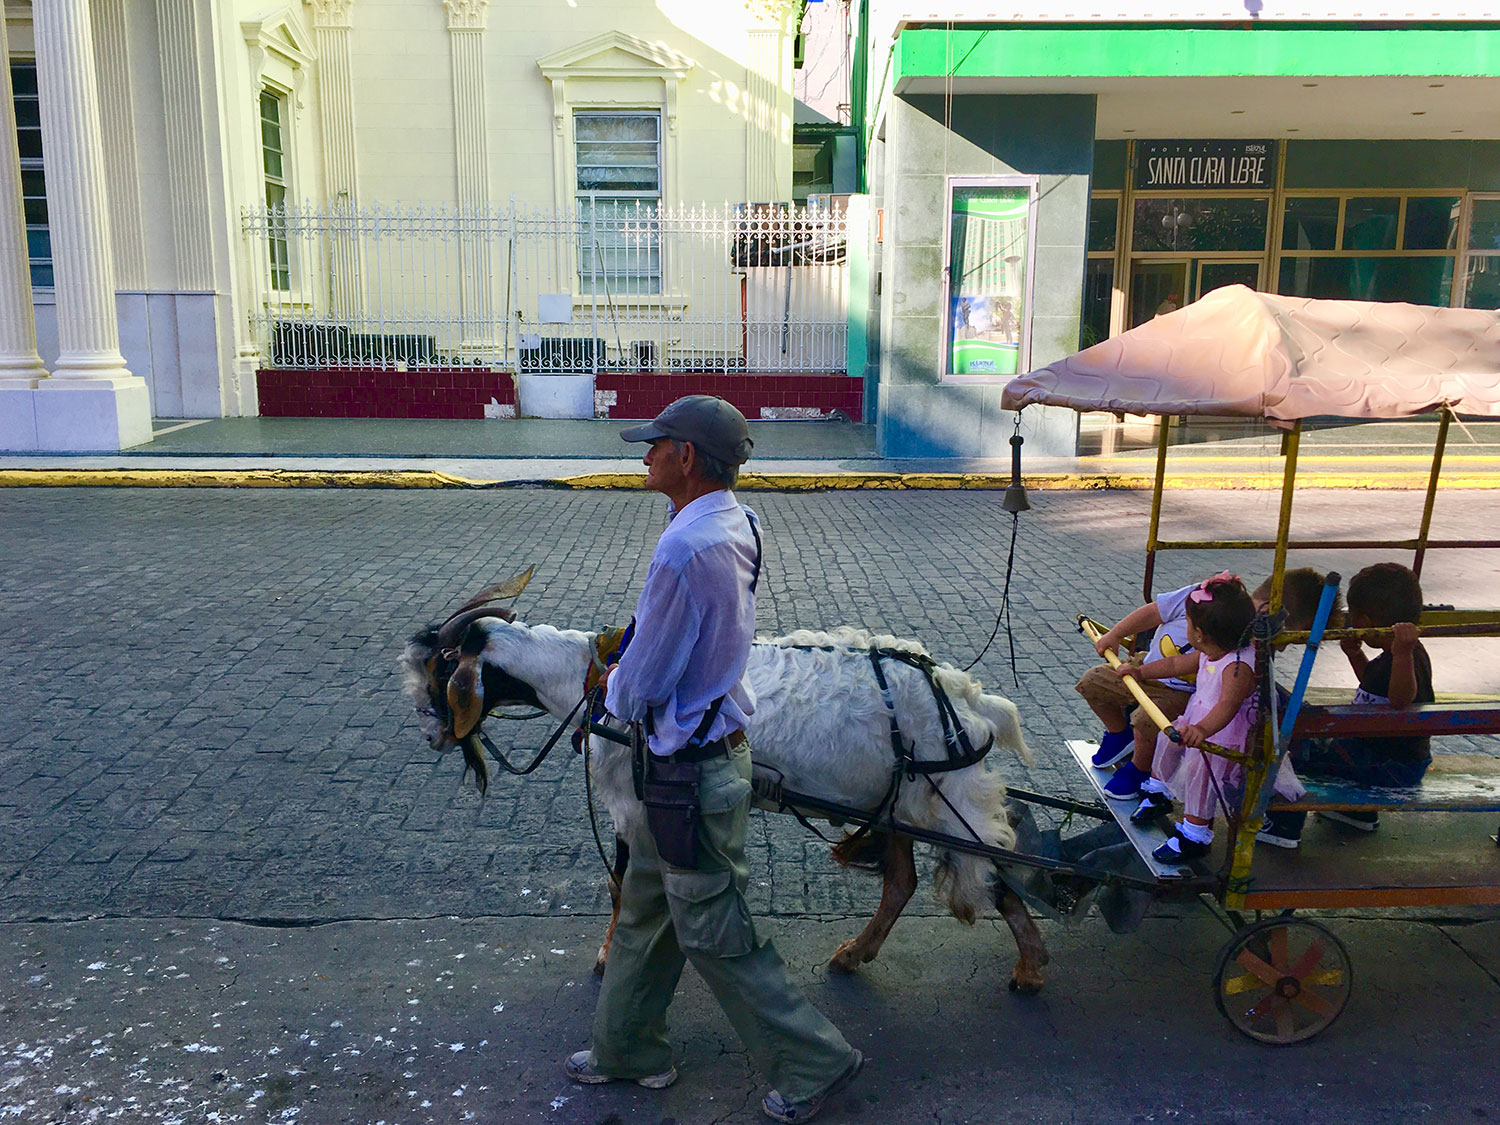 Children riding on a goat carriage.